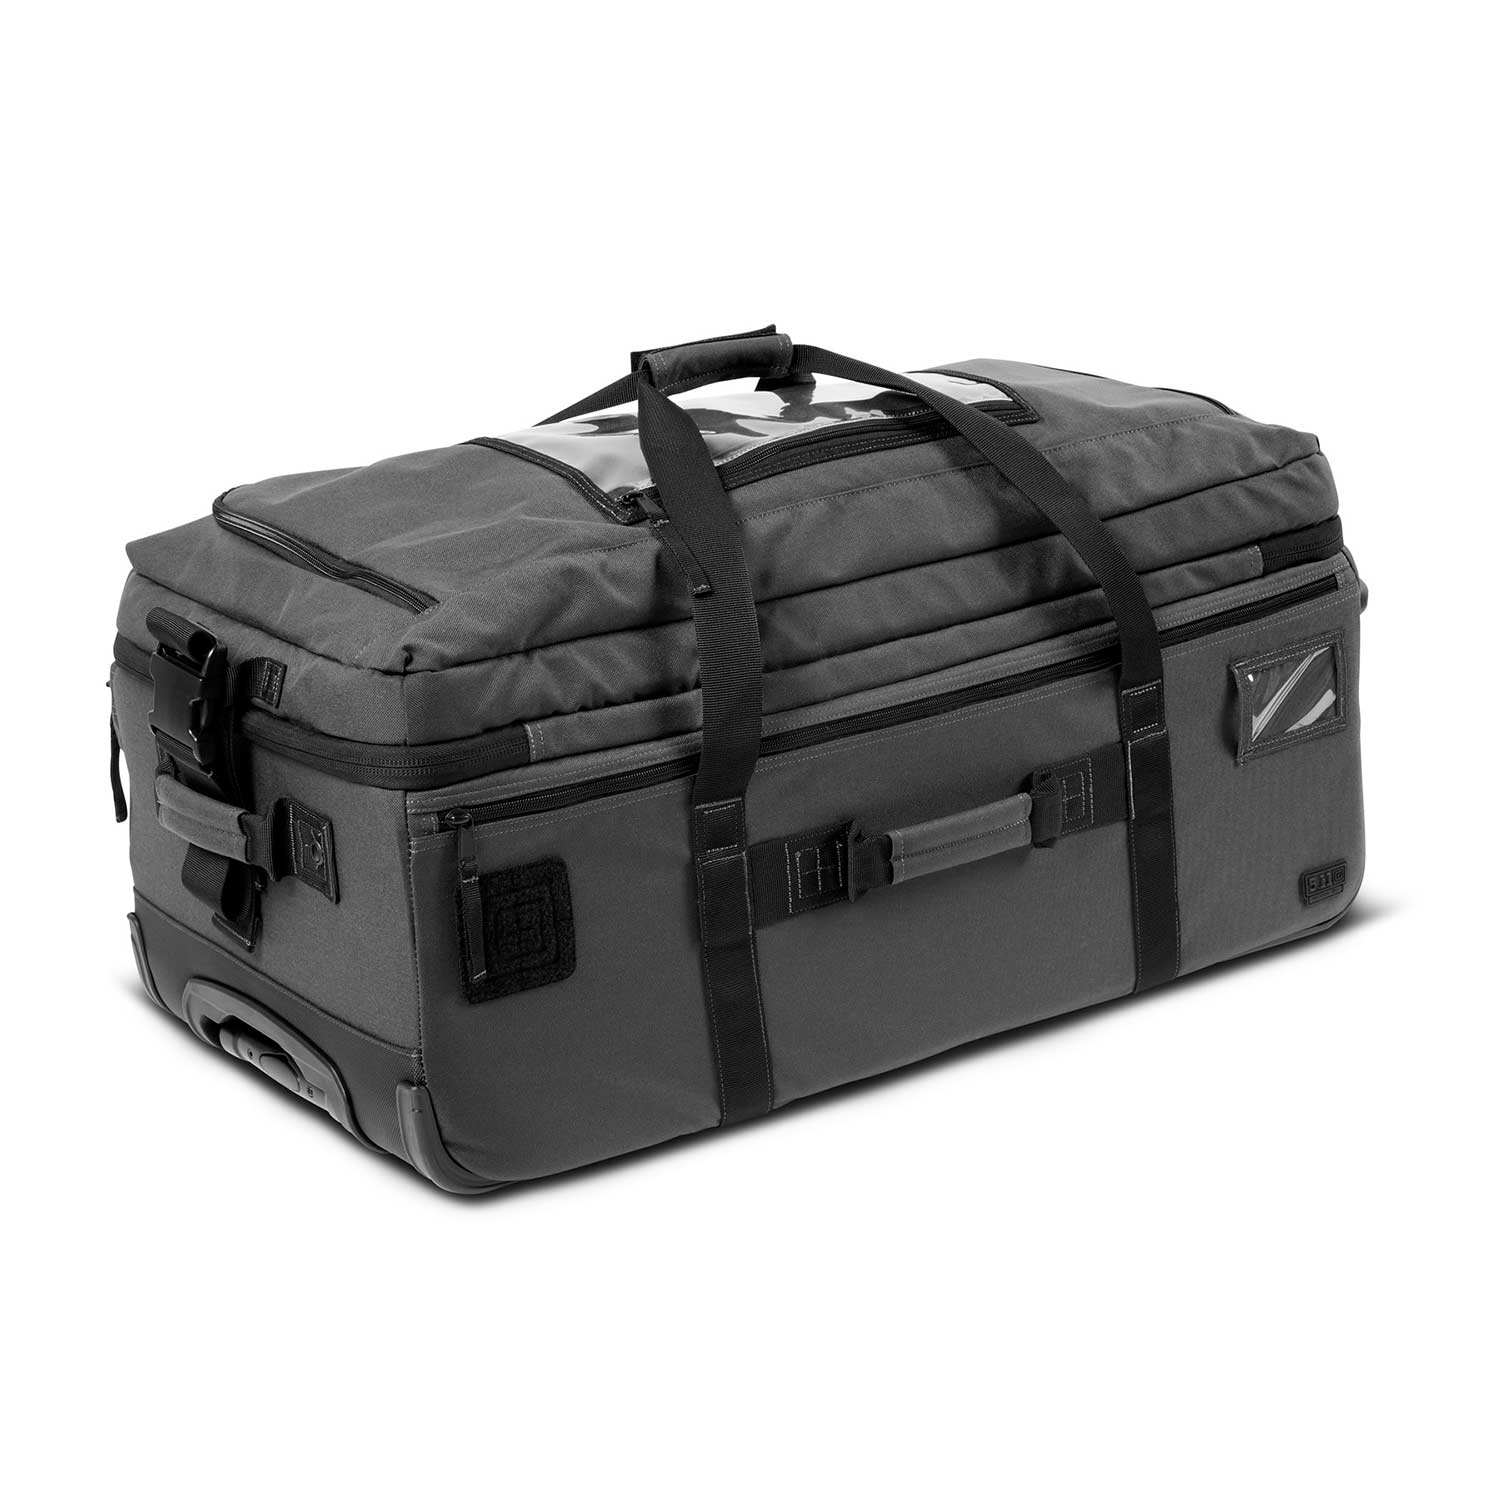 5.11 Tactical Mission Ready 3.0 Rolling Duffel Bag